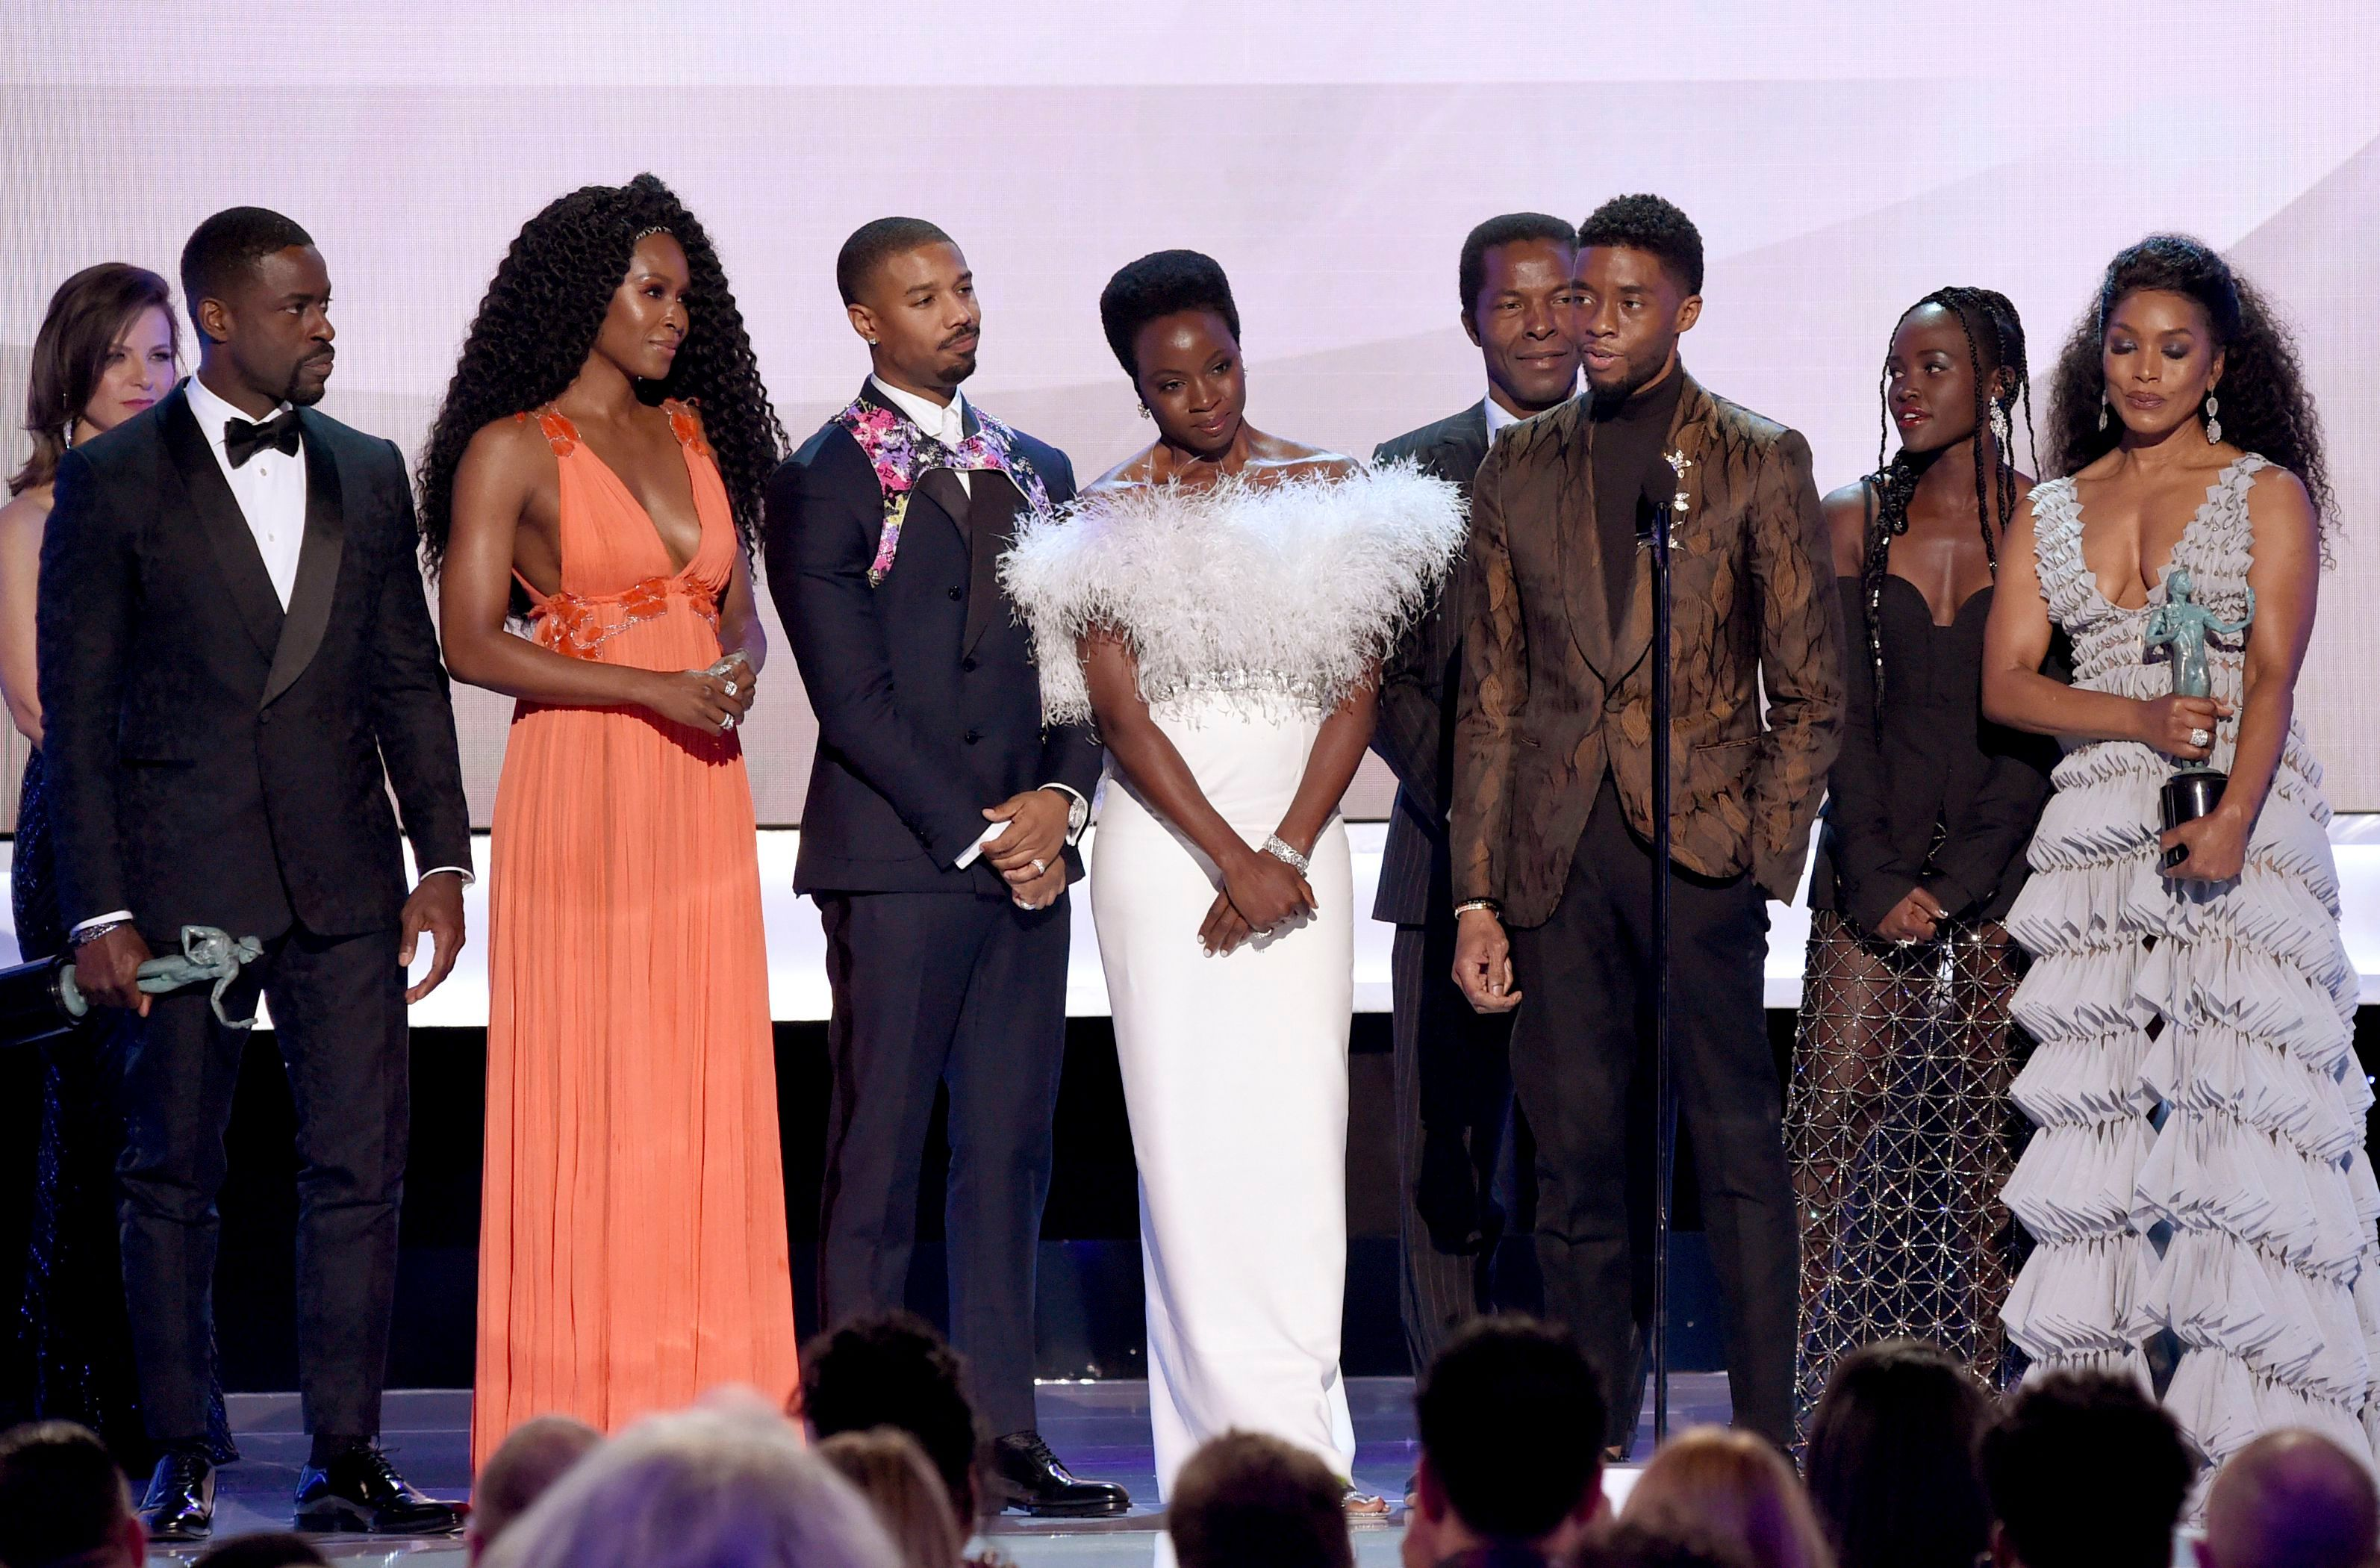 "Sterling K. Brown, Sydelle Noel, Michael B. Jordan, Danai Gurira, Isaach de Bankole, Chadwick Boseman, Lupita Nyong'o, Angela Bassett. Sterling K. Brown, from left, Sydelle Noel, Michael B. Jordan, Danai Gurira, Isaach de Bankole, Chadwick Boseman, Lupita Nyong'o and Angela Bassett from the cast of ""Black Panther,"" accept the award for outstanding performance by a cast in a motion picture at the 25th annual Screen Actors Guild Awards at the Shrine Auditorium & Expo Hall, in Los Angeles25th Annual SAG Awards - Show, Los Angeles, USA - 27 Jan 2019"